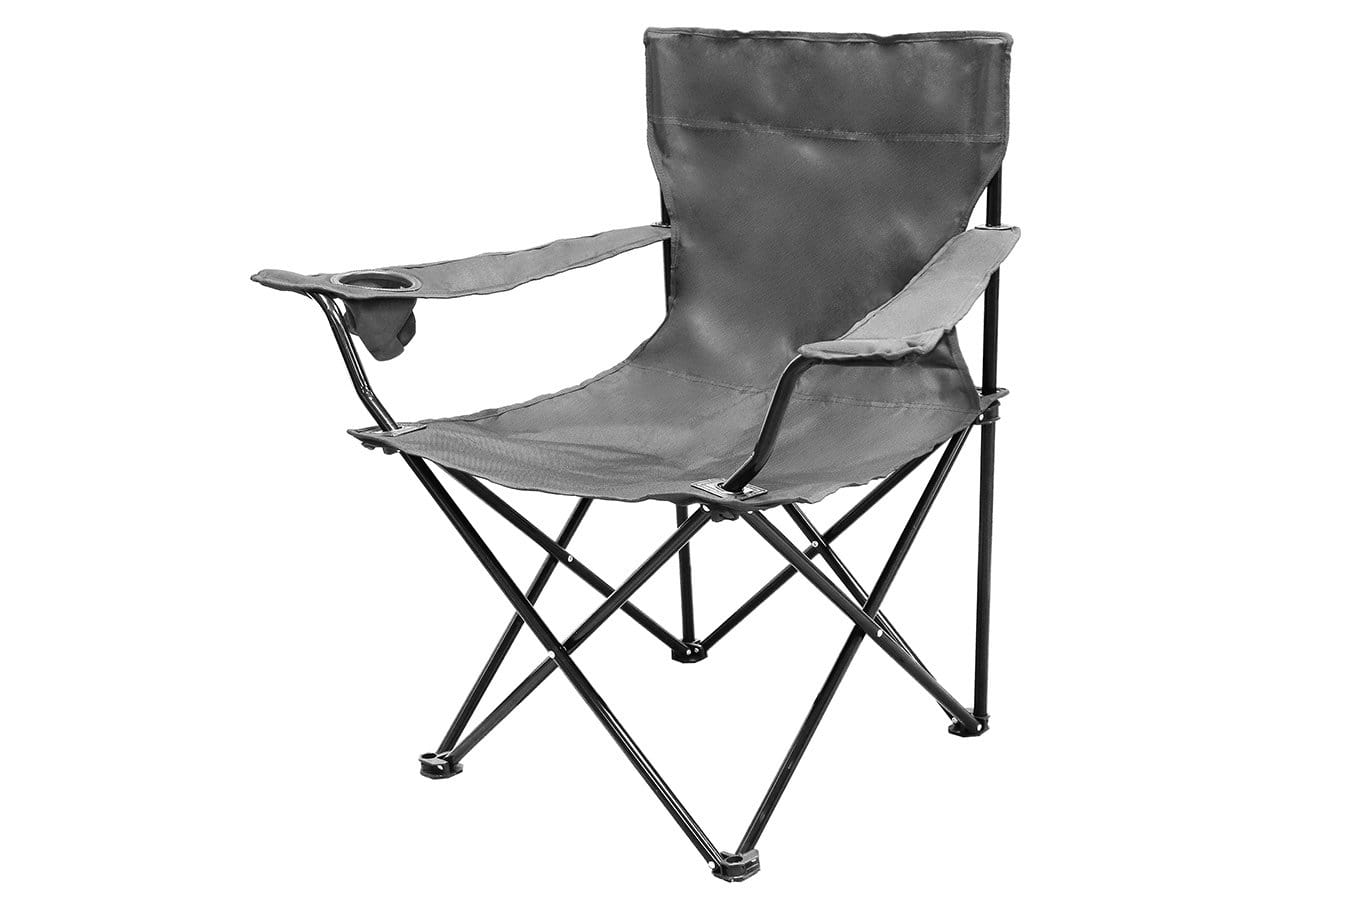 Single Rugby Sideline Chair Woven Fabric W/ Collapsible Steel Frame